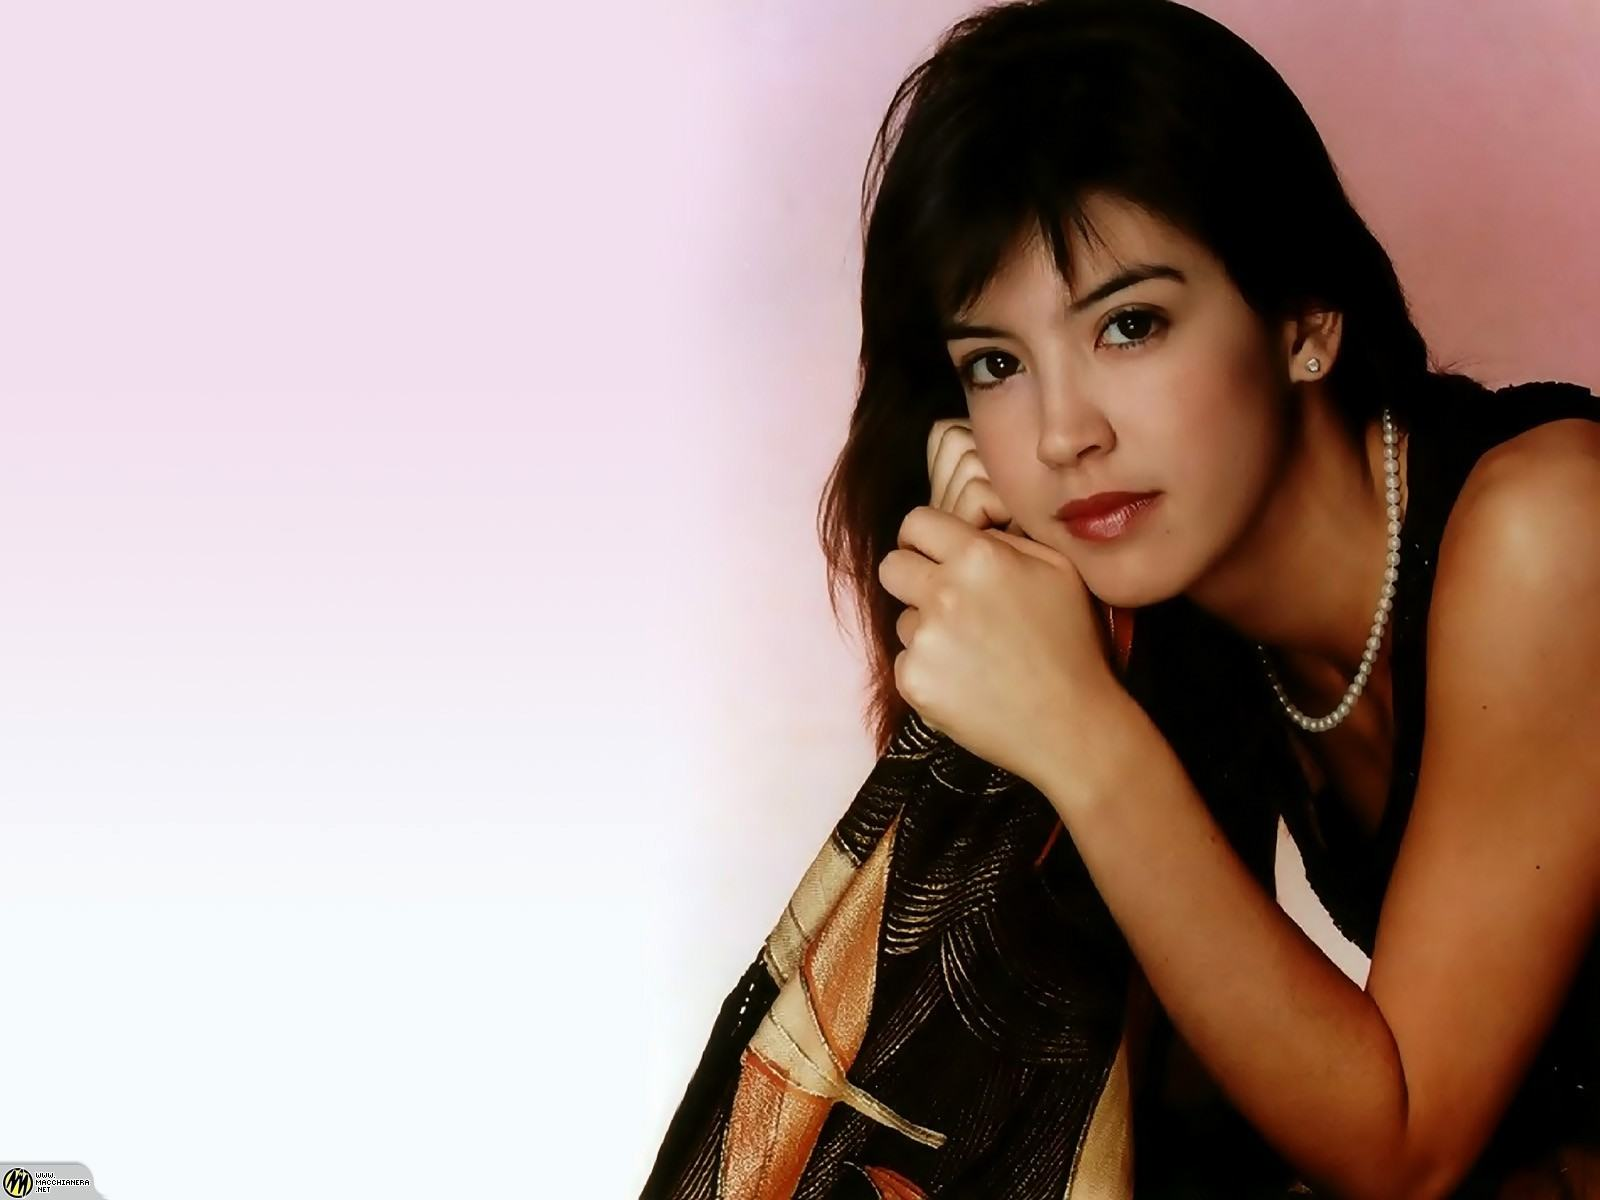 1600x1200 - Phoebe Cates Wallpapers 12